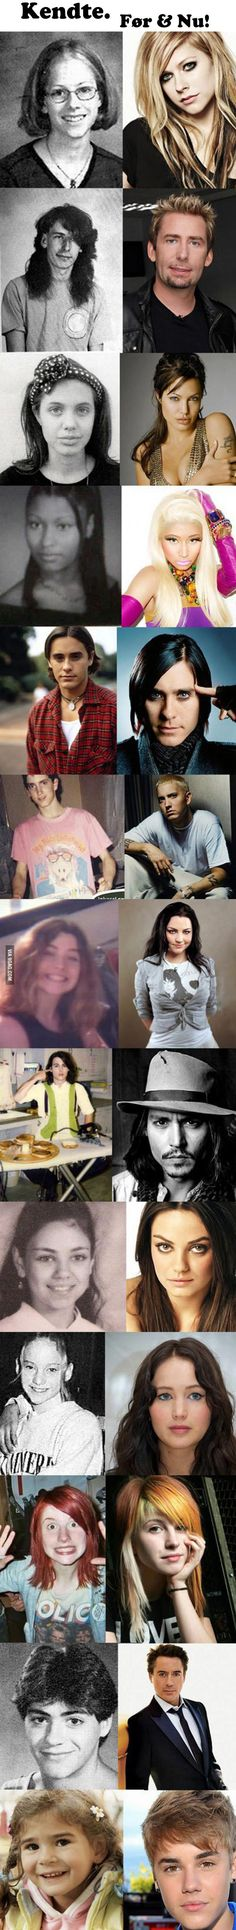 Celebs, Then And Now